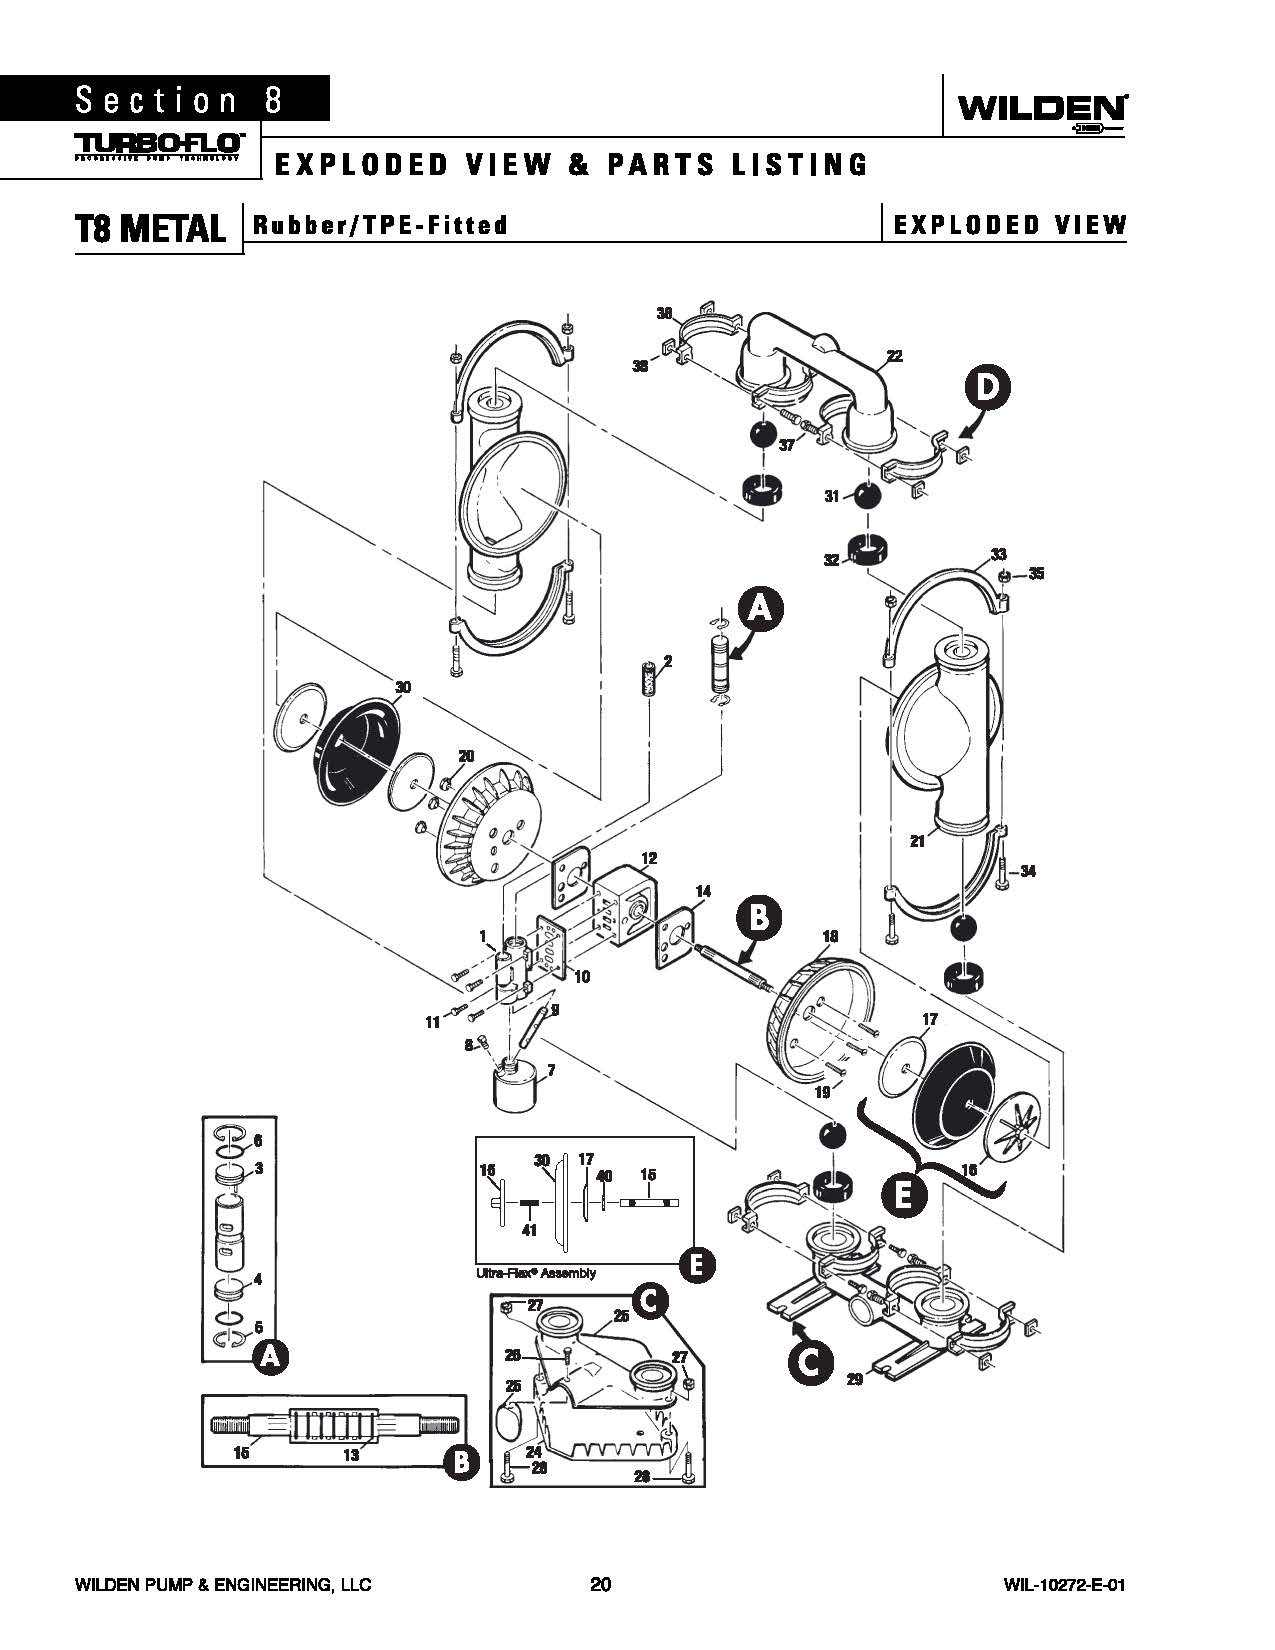 GE 99655 as well Dual Battery Wiring Diagram Car Audio additionally Star Delta Circuit Diagram also Ford Explorer Rear End Schematics moreover Msd Wiring Diagram. on t8 wiring diagram